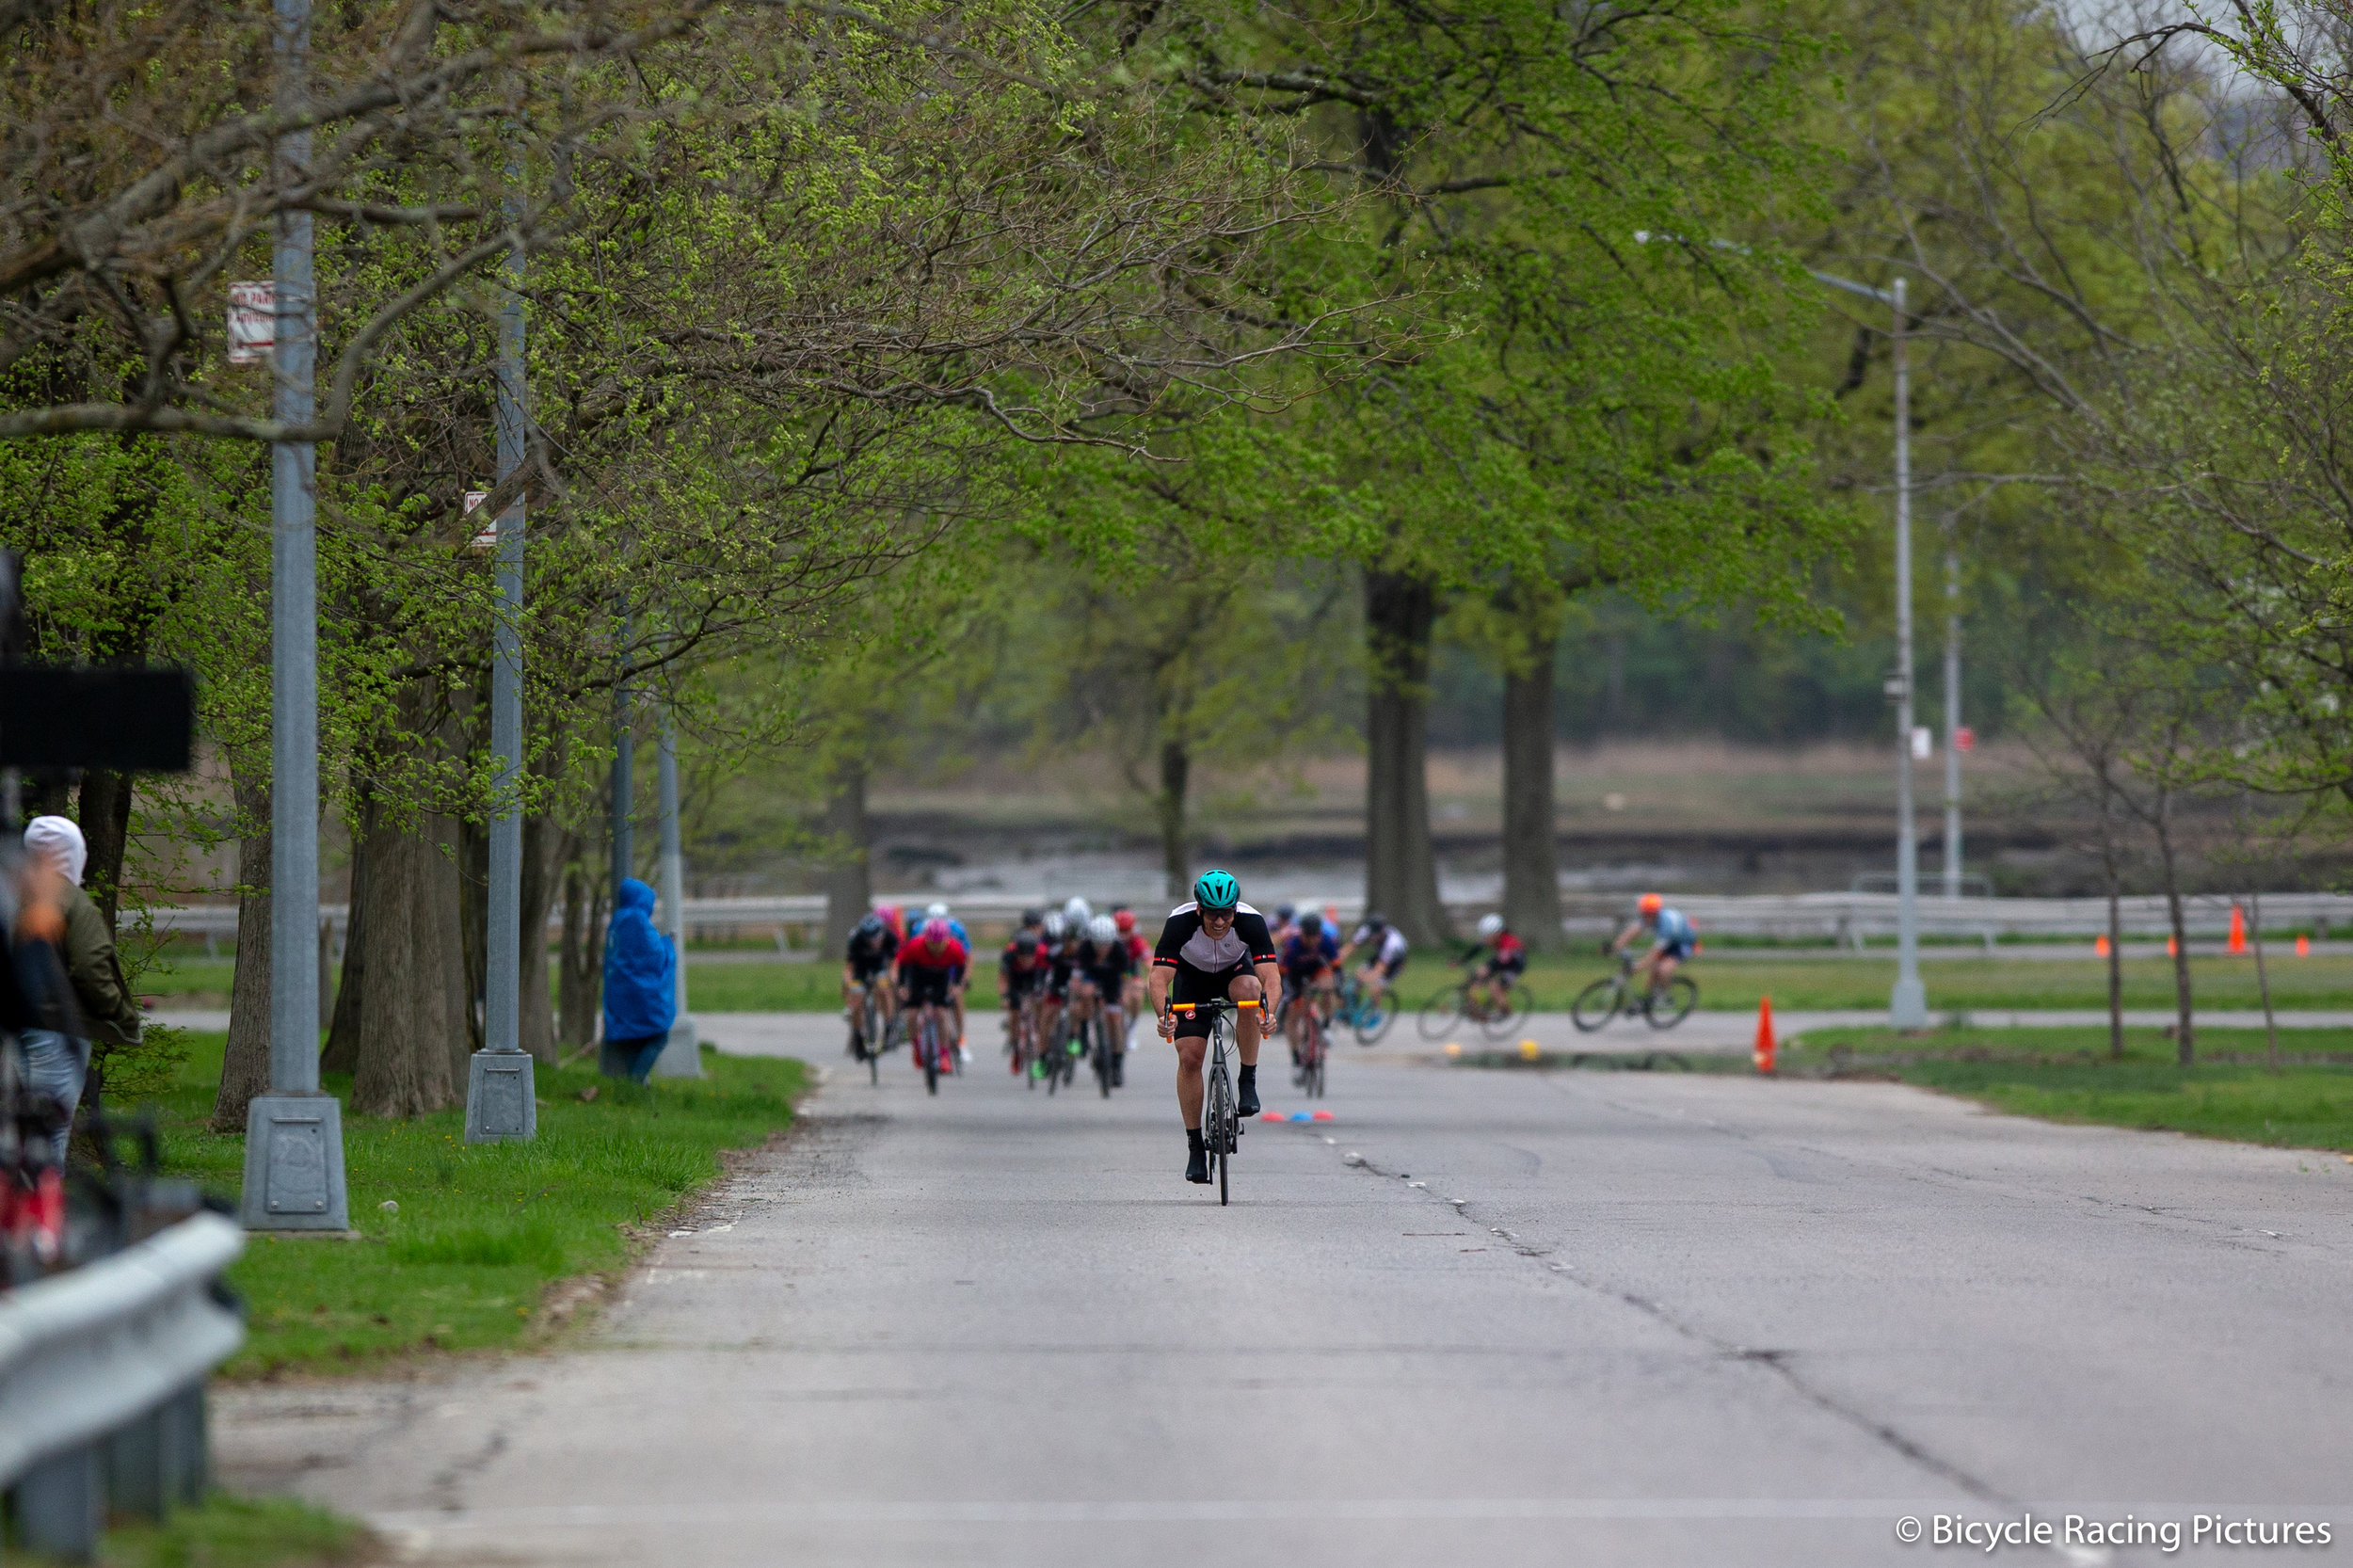 Racing at Orchard Beach. Photo courtesy of Bicycle Racing Pictures.